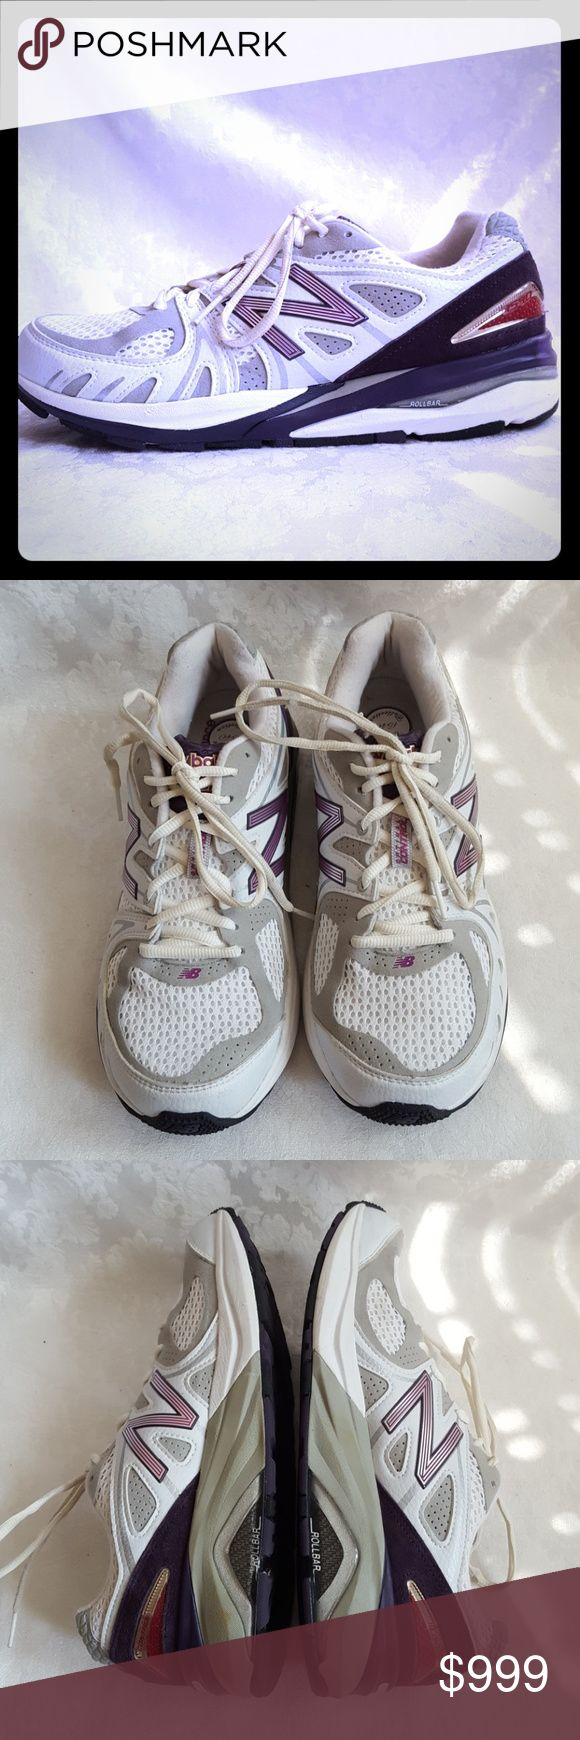 🌺DISC SHIP🌺Like New! New Balance 1540 Running Like New Balance 1540 running shoes. White, purple & pink. Motion control w/ stability features to guide foot forward. Developed for comfort, control & stability. Made in USA.  * ROLLBAR w/ Medial & Lateral TPU Posts for ultimate motion control * ACTEVA Midsole cushions & resists compression set -12% lighter than standard foam * ENCAP midsole technology provides support & max. durability * ABZORB cushioning in midfoot for exceptional shock…